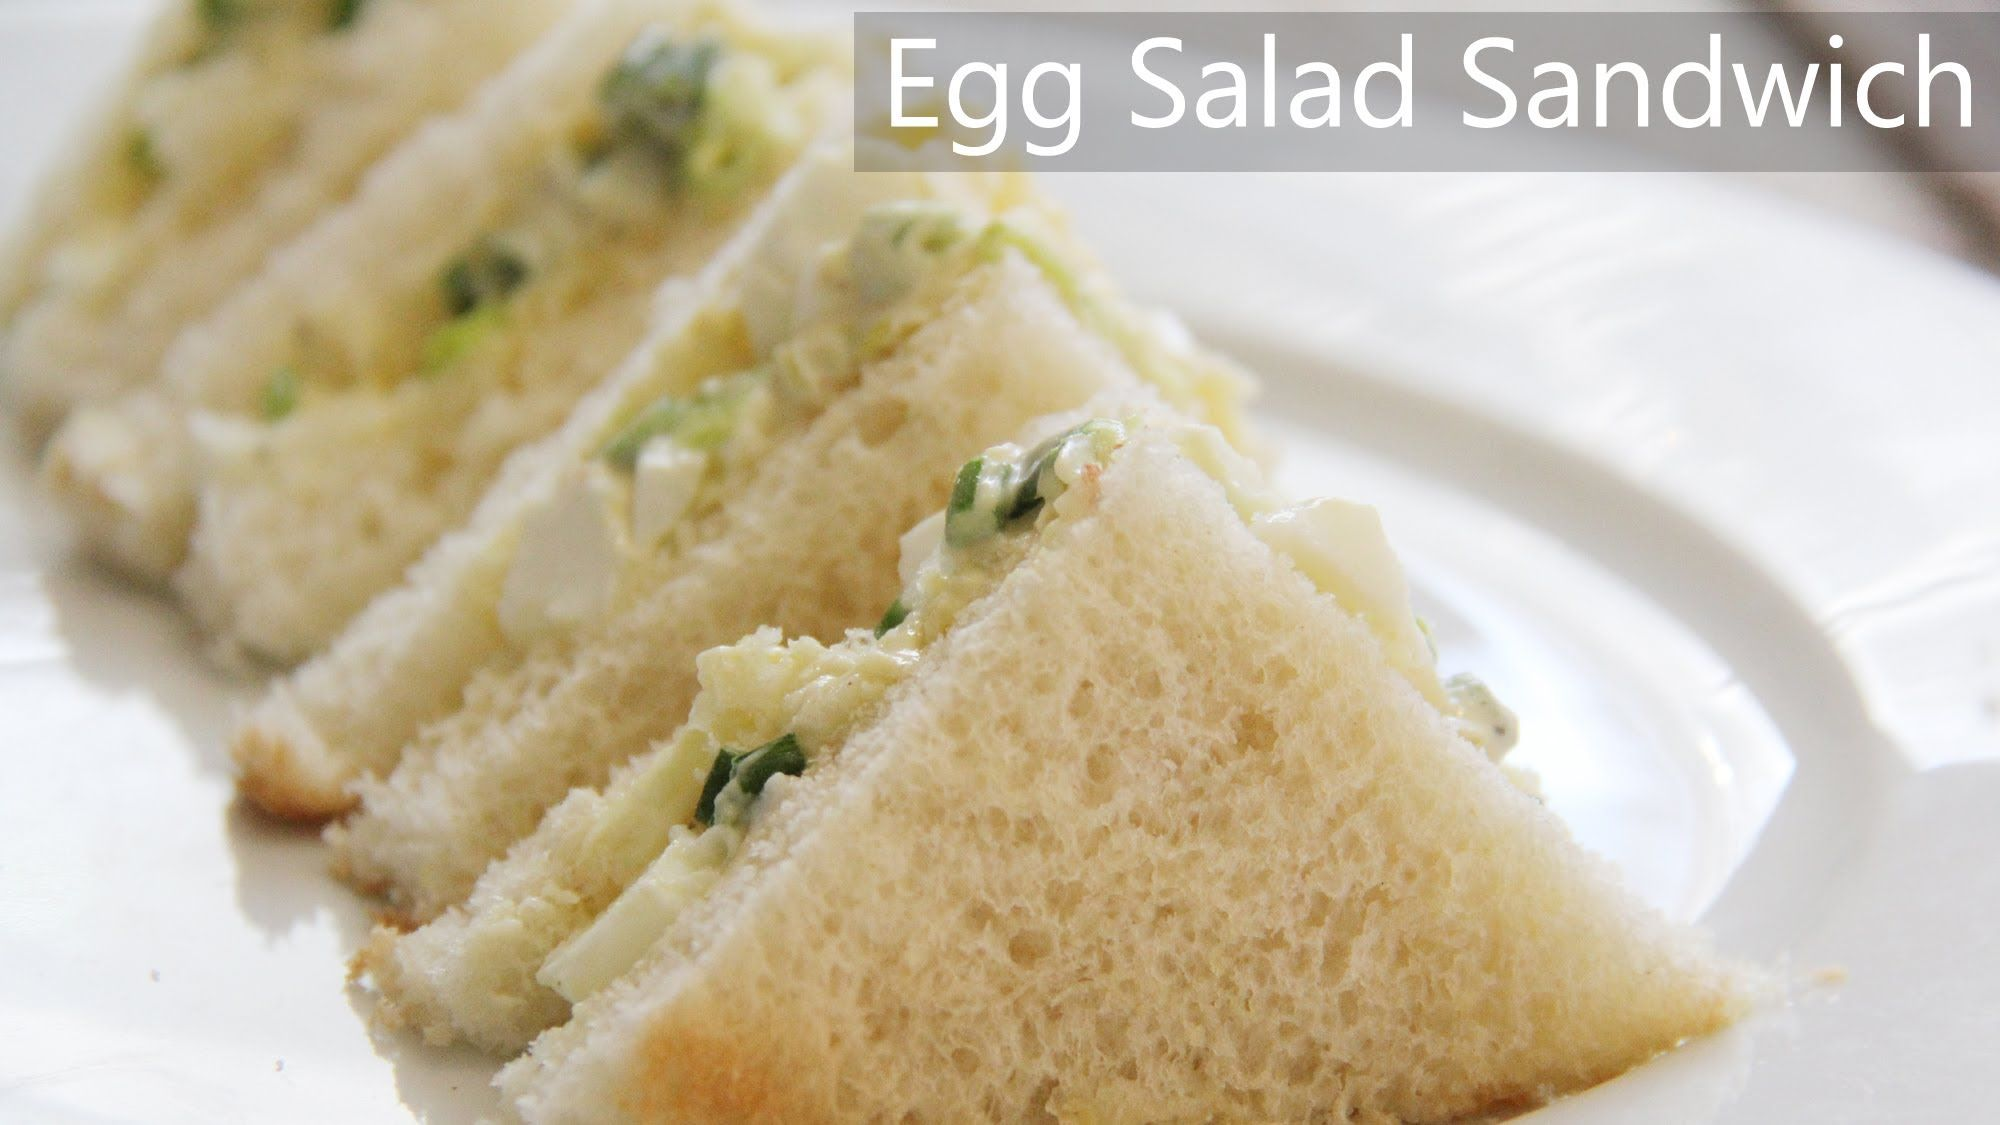 Egg salad sandwich easy egg recipe quick and easy indian snacks egg salad sandwich easy egg recipe quick and easy indian snacks appe forumfinder Gallery